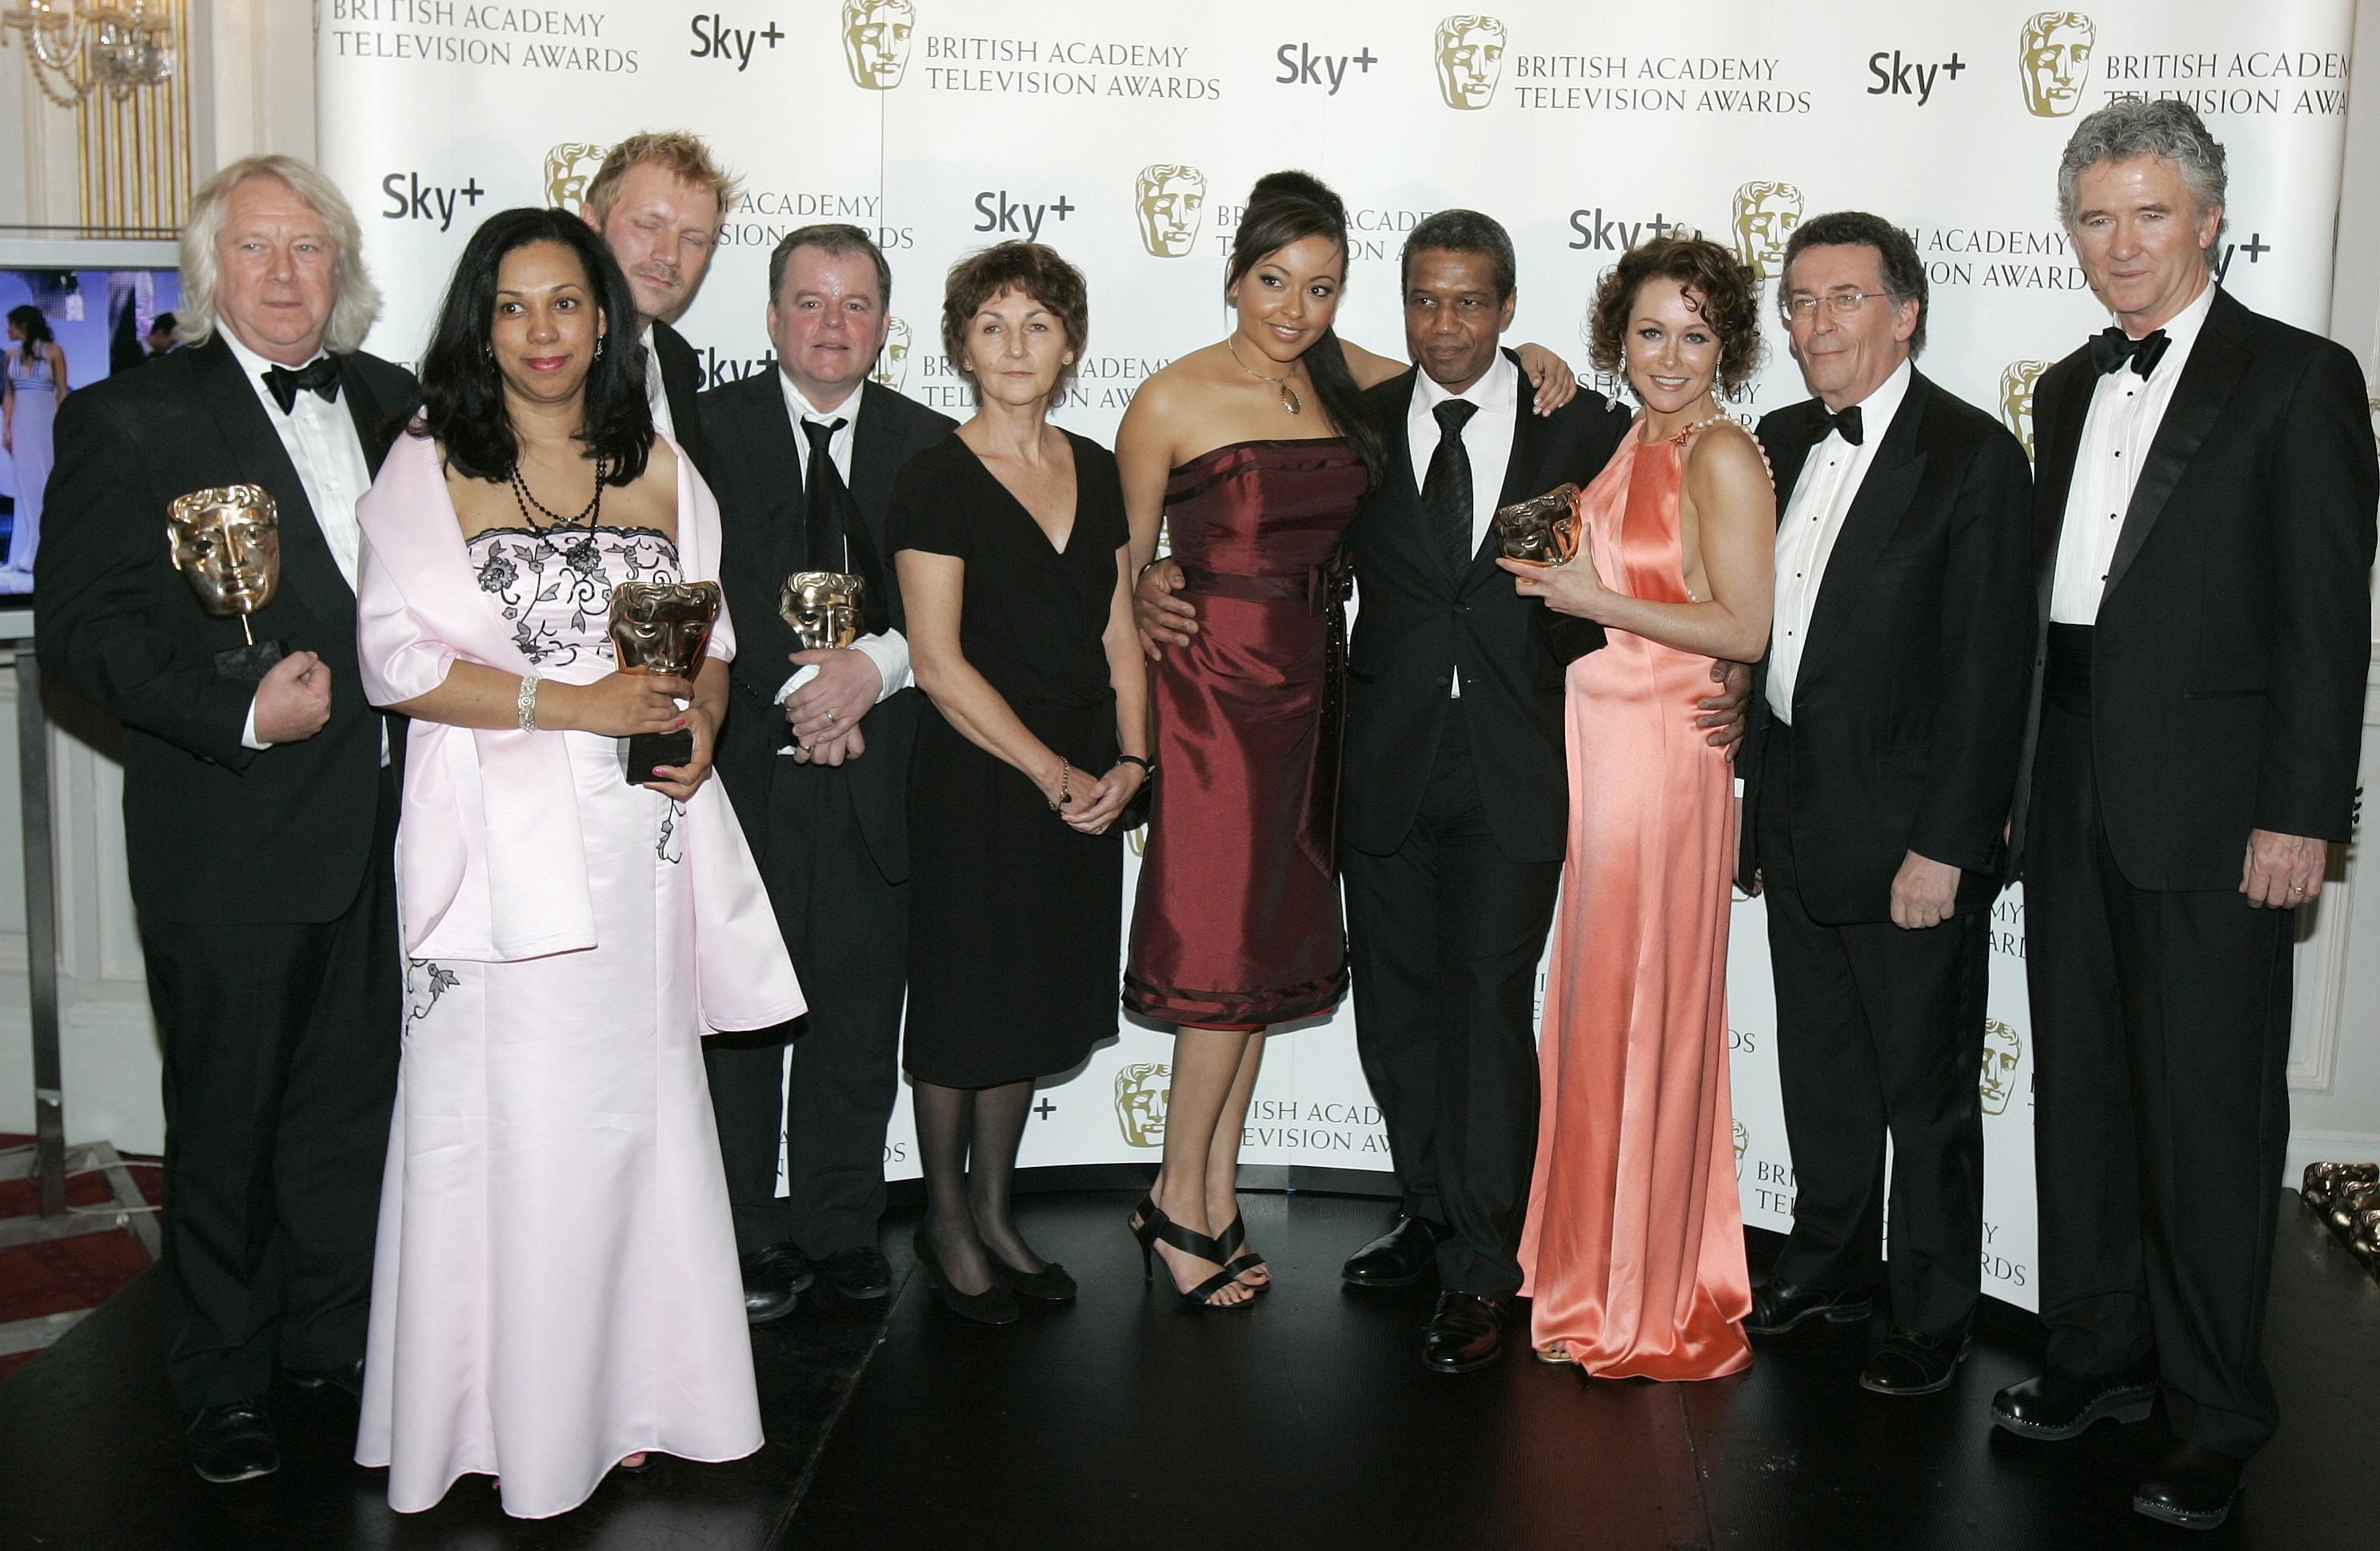 Holby City shock at Bafta win (VIDEO)